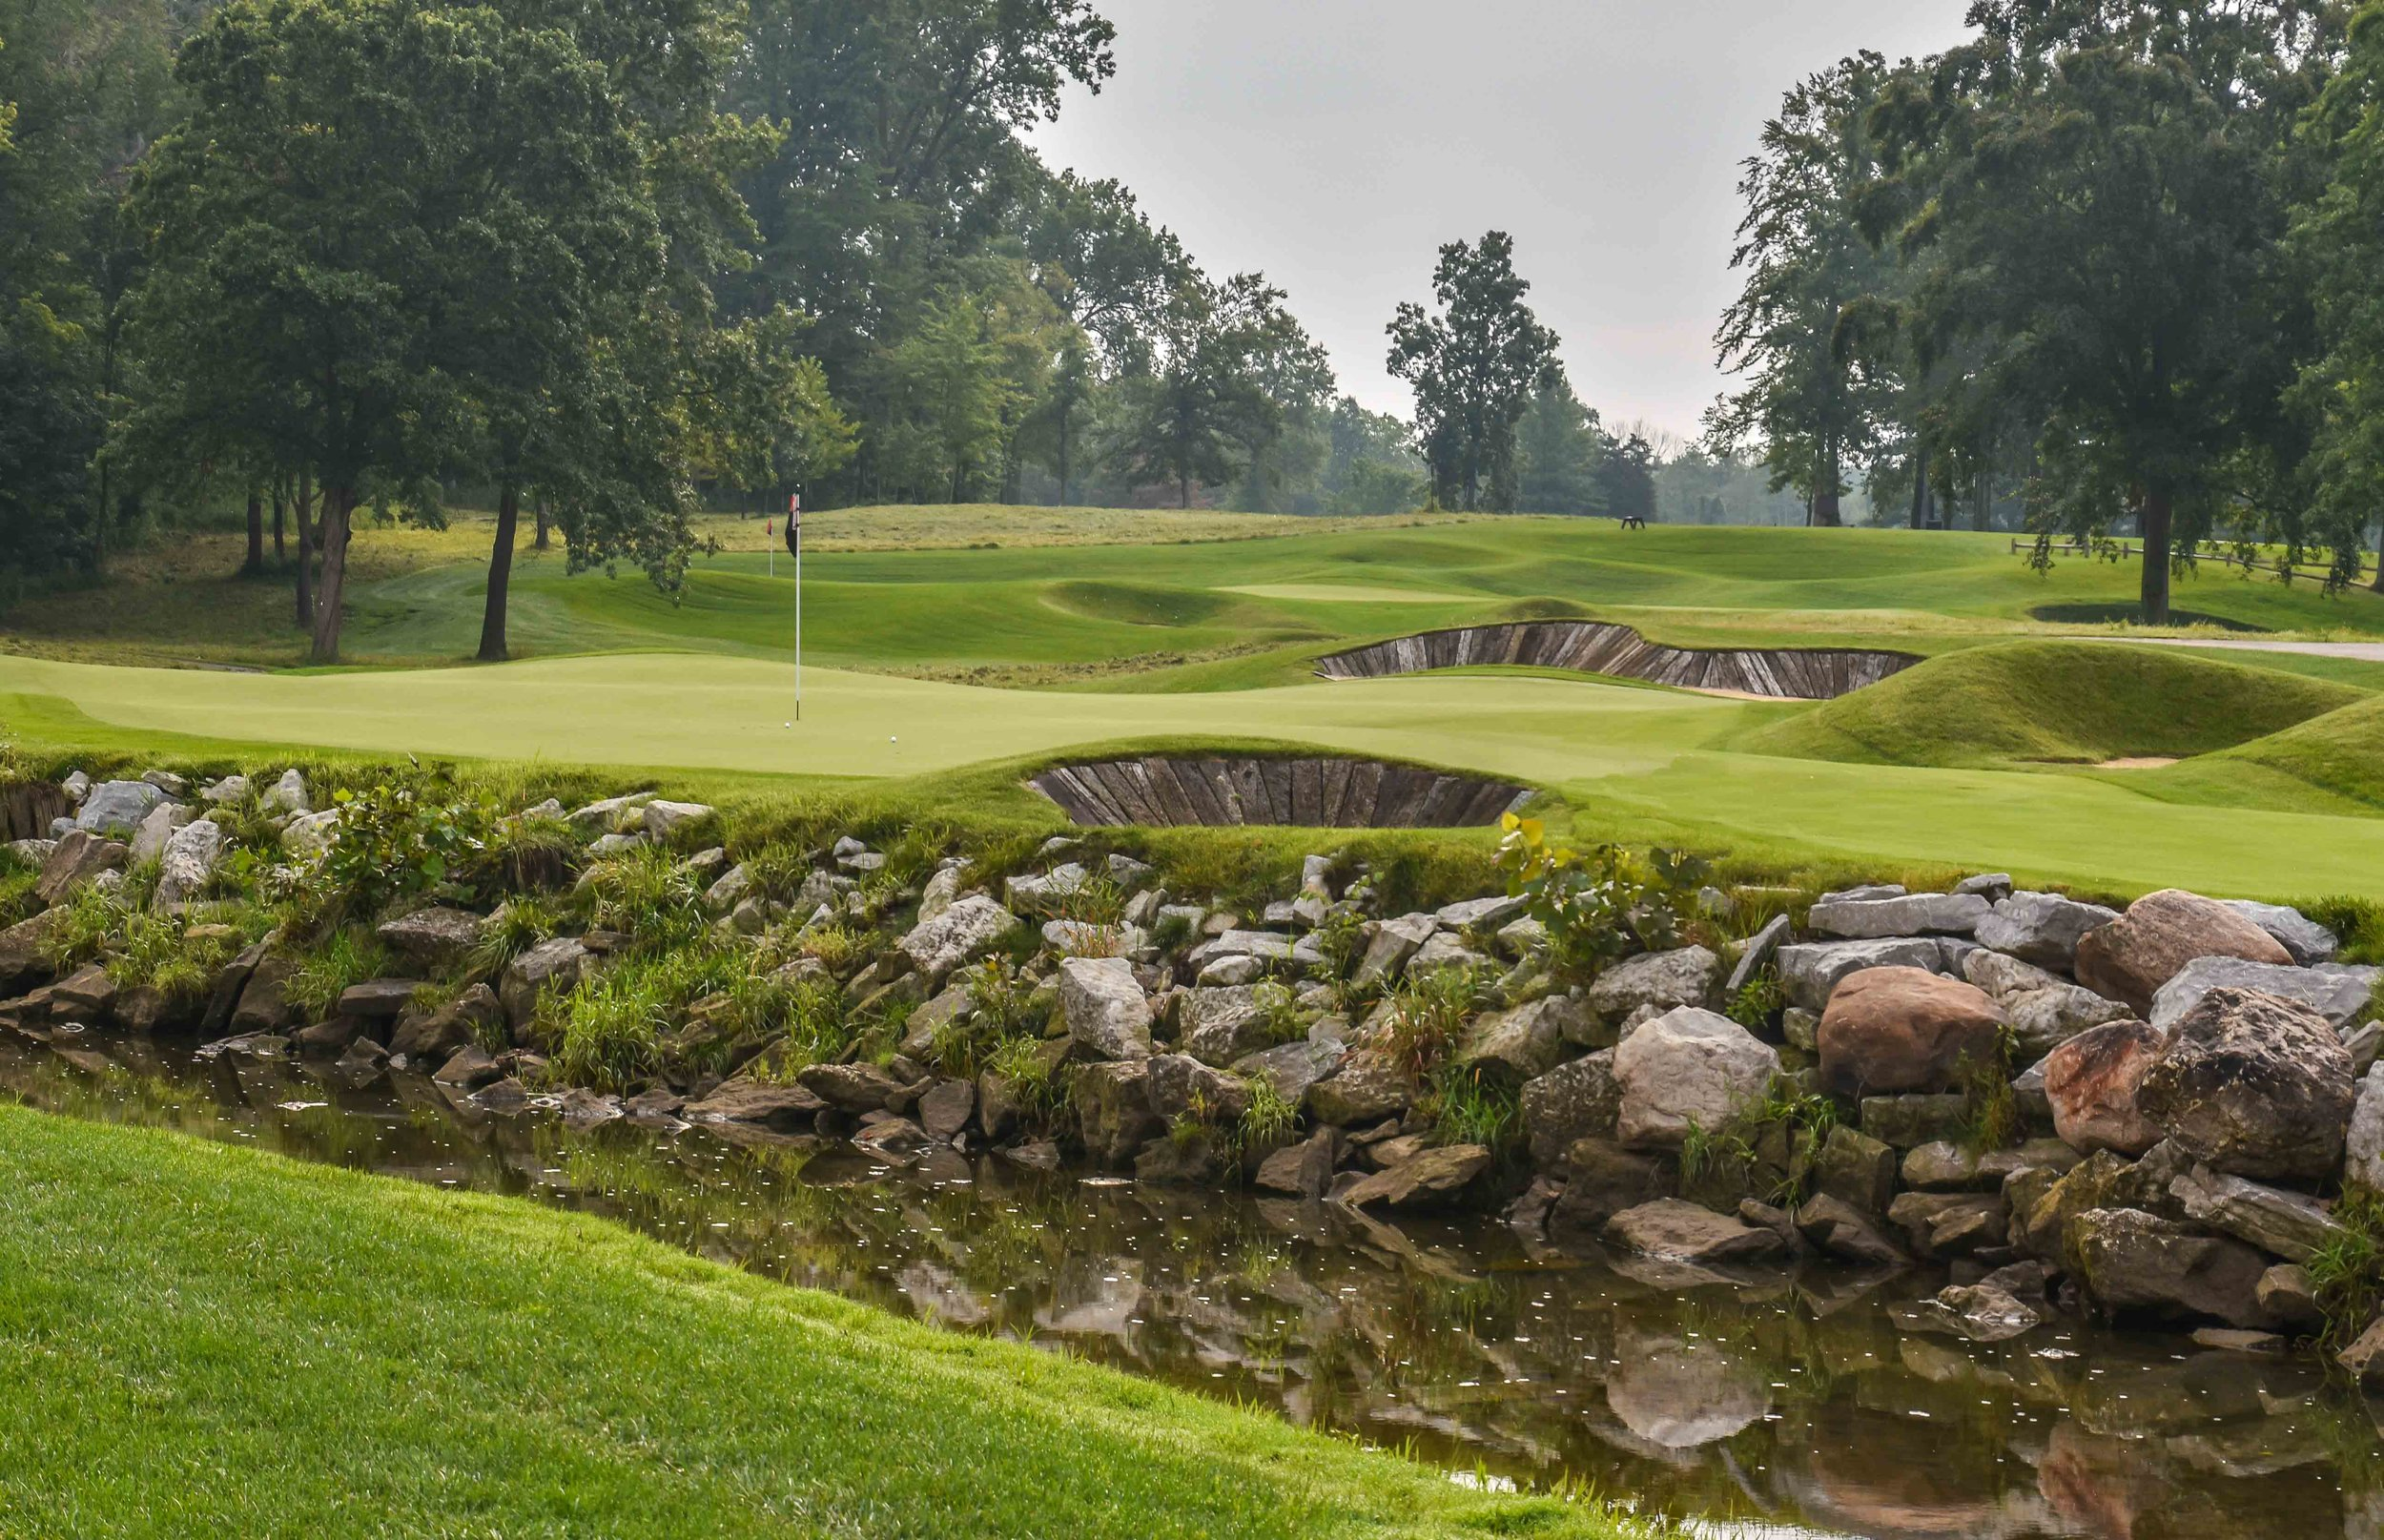 The 5th hole is one of the more unique green complexes.